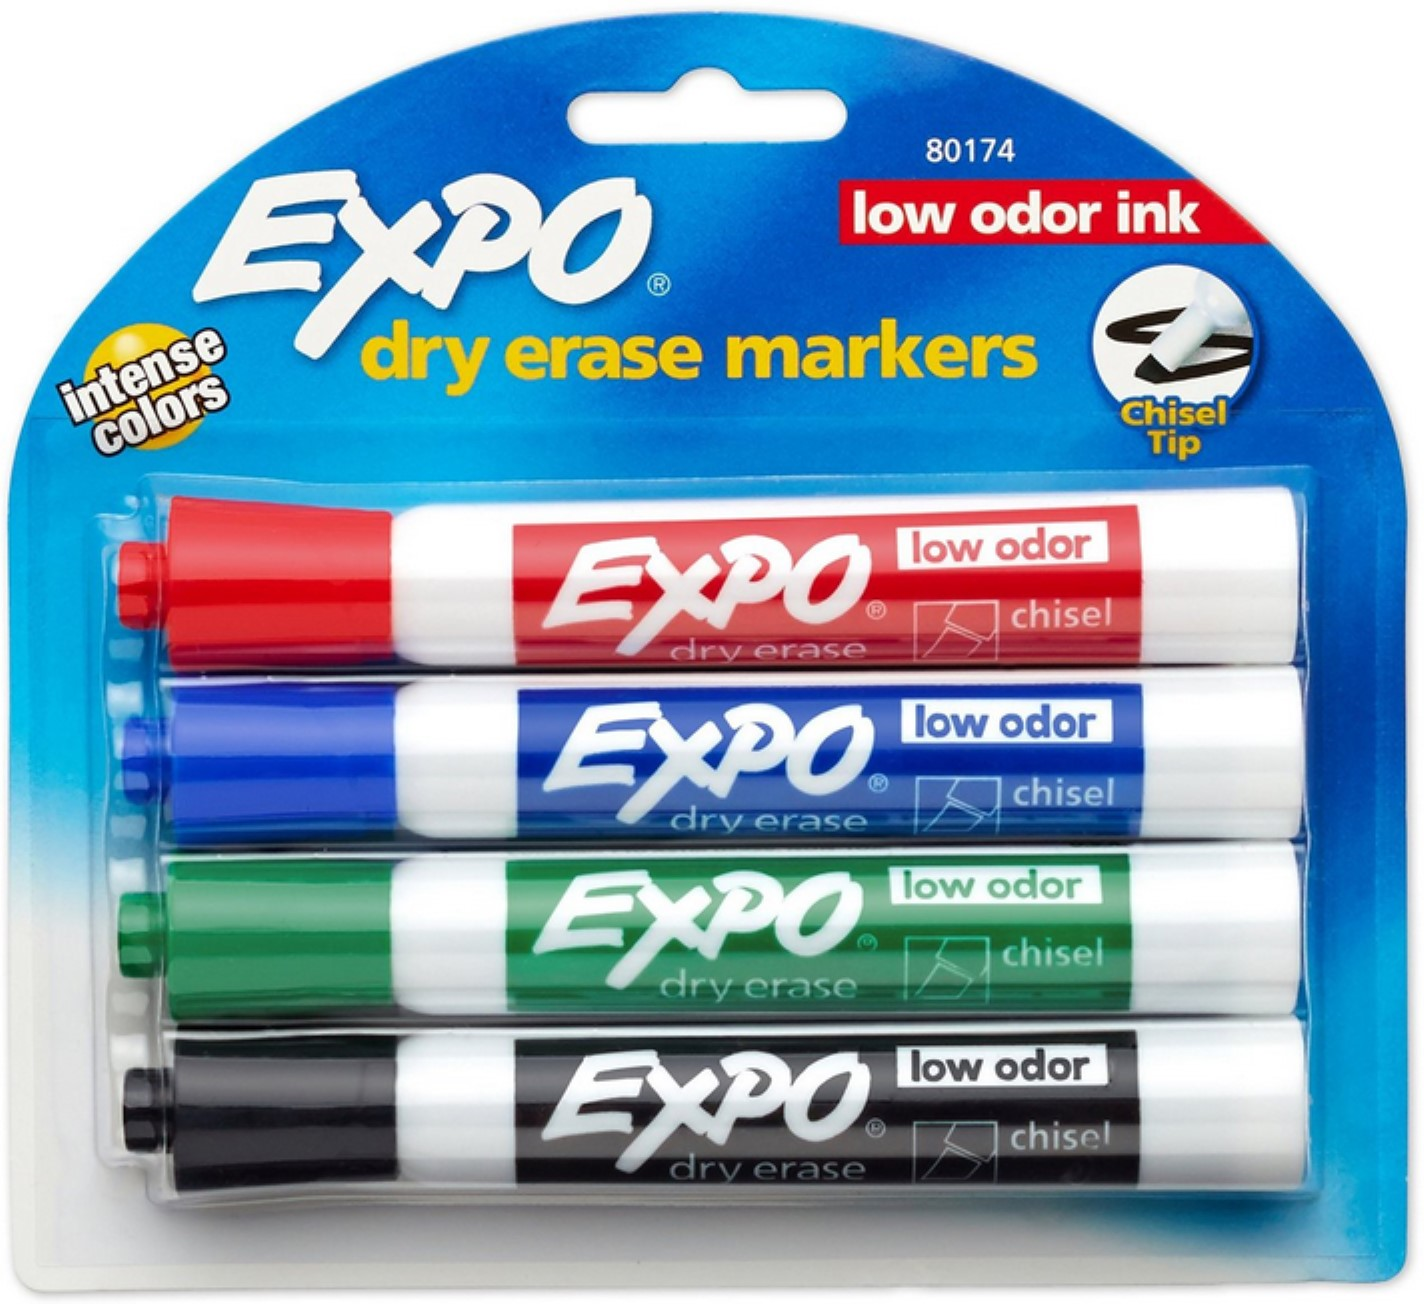 EXPO Low Odor Dry Erase Markers, Chisel Tip, Assorted Colors, 4 Pack